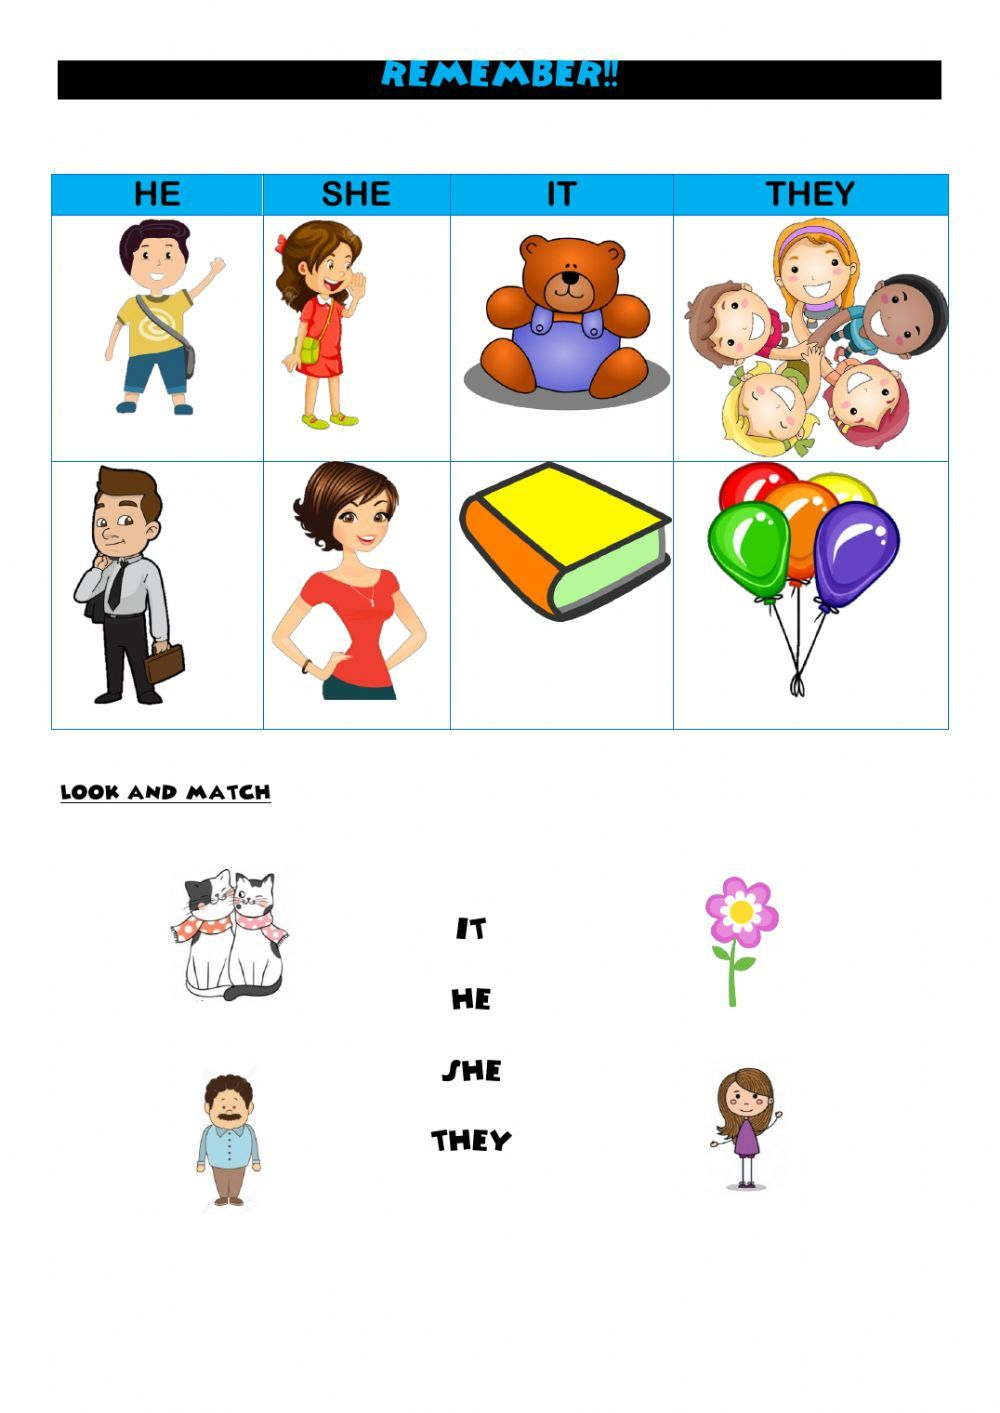 Subject Pronouns Online Worksheet For Primaria You Can Do The Exercises Onli In 2020 English As A Second Language English As A Second Language Esl Personal Pronouns